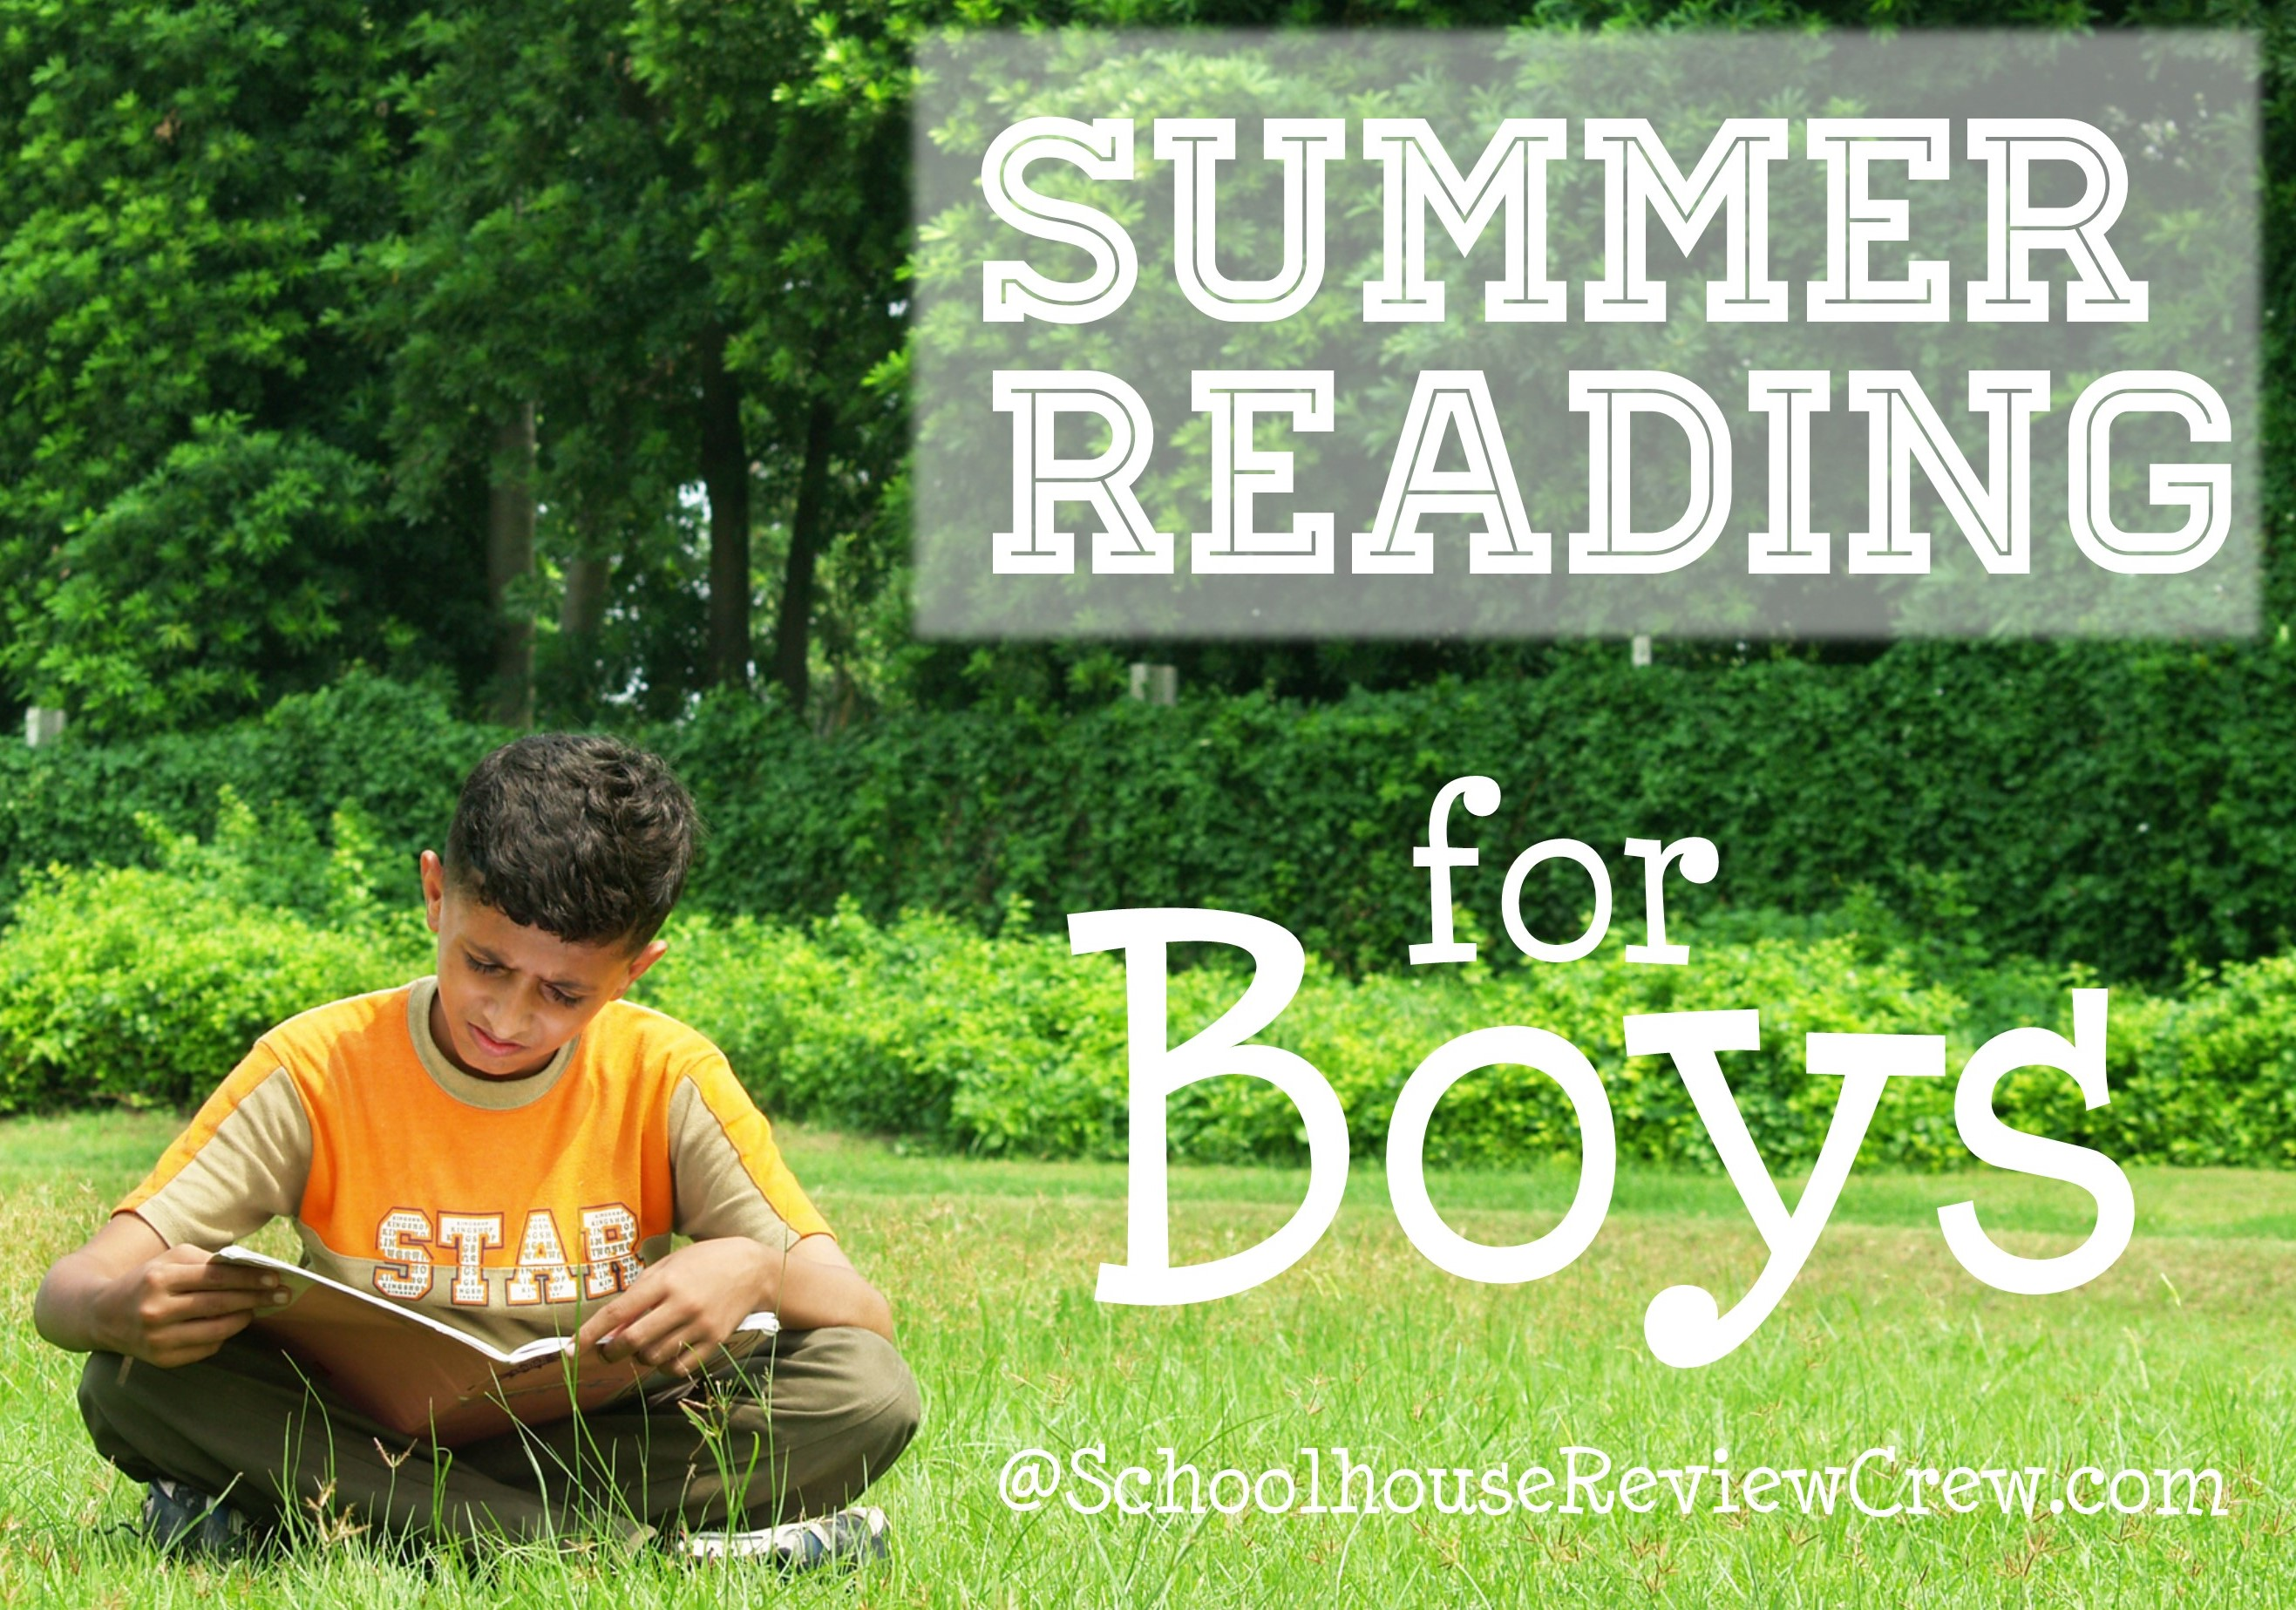 summerreadingboys (2)